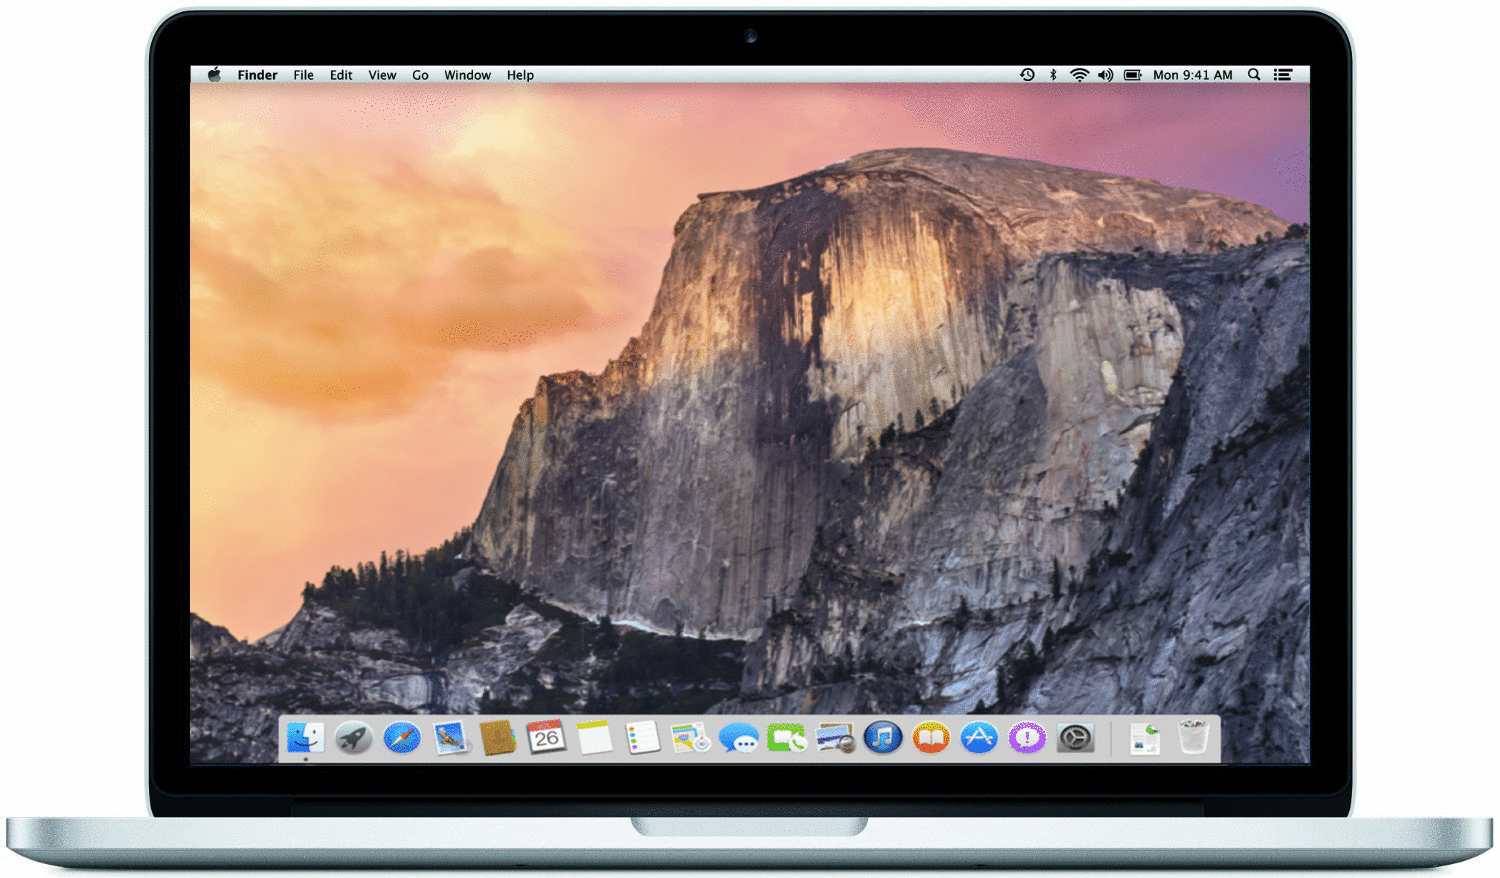 Apple MacBook Pro CTO 13.3 (Retina Display) 3.1 GHz Intel Core i7 8 GB RAM 512 GB PCIe SSD [Early 2015]